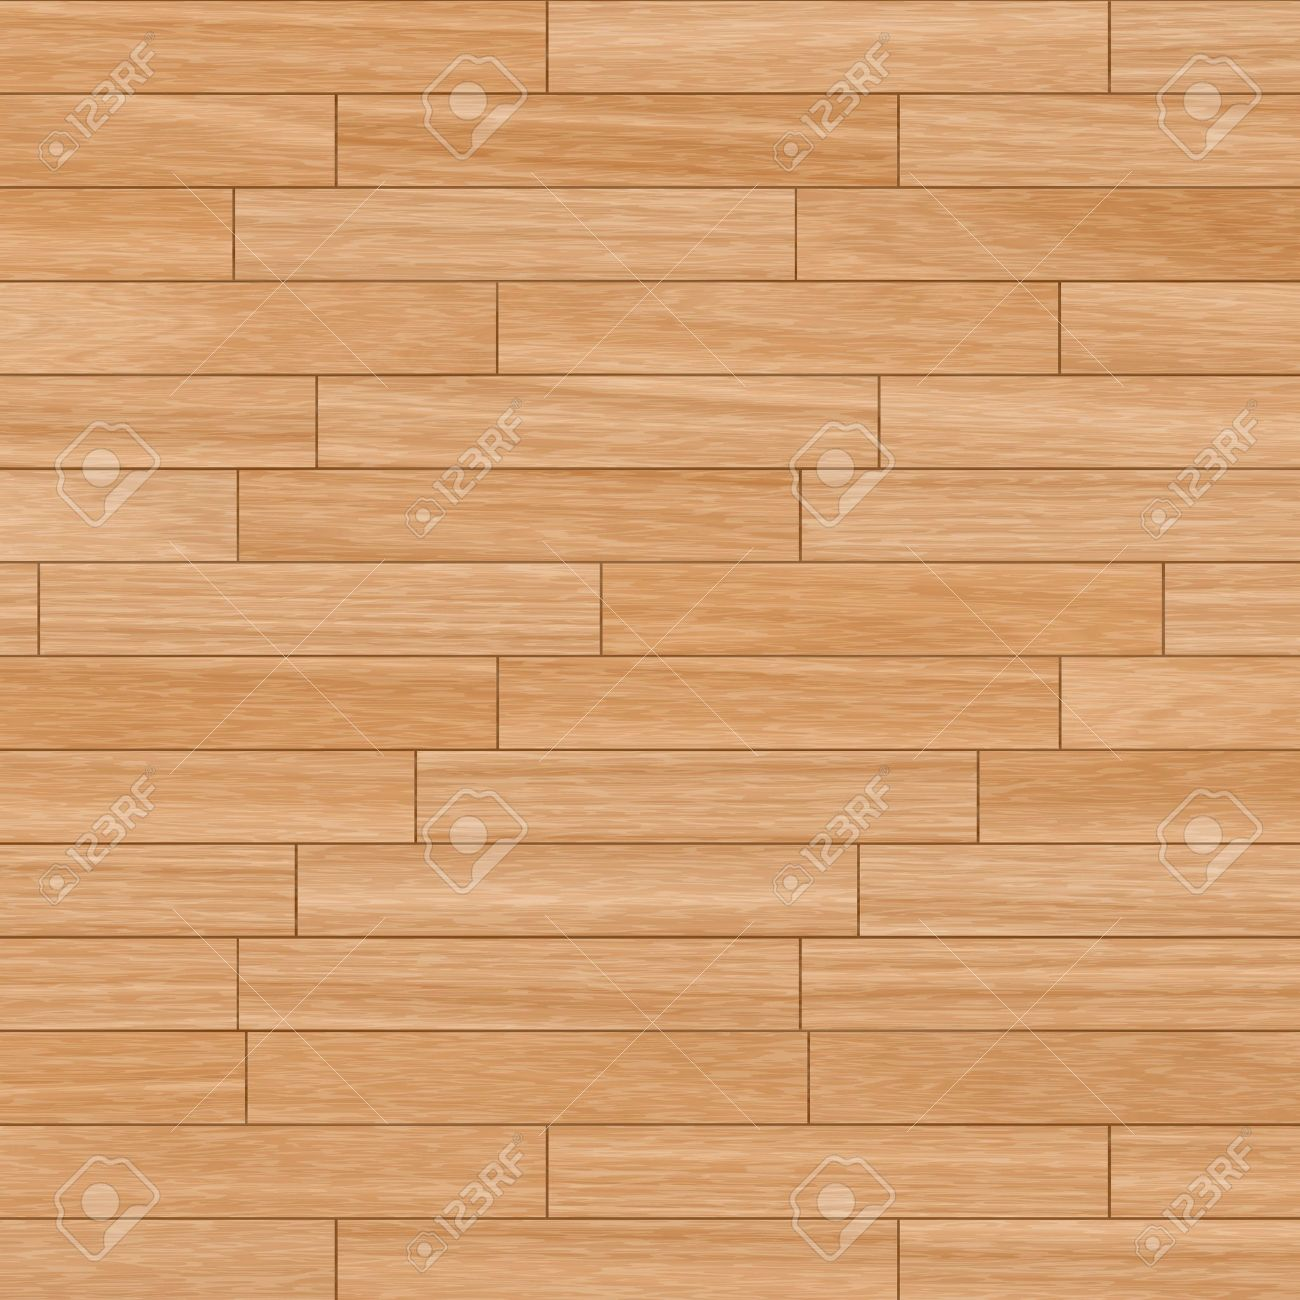 stock photo - wooden parquet flooring surface pattern texture seamless  background EOOSLVA